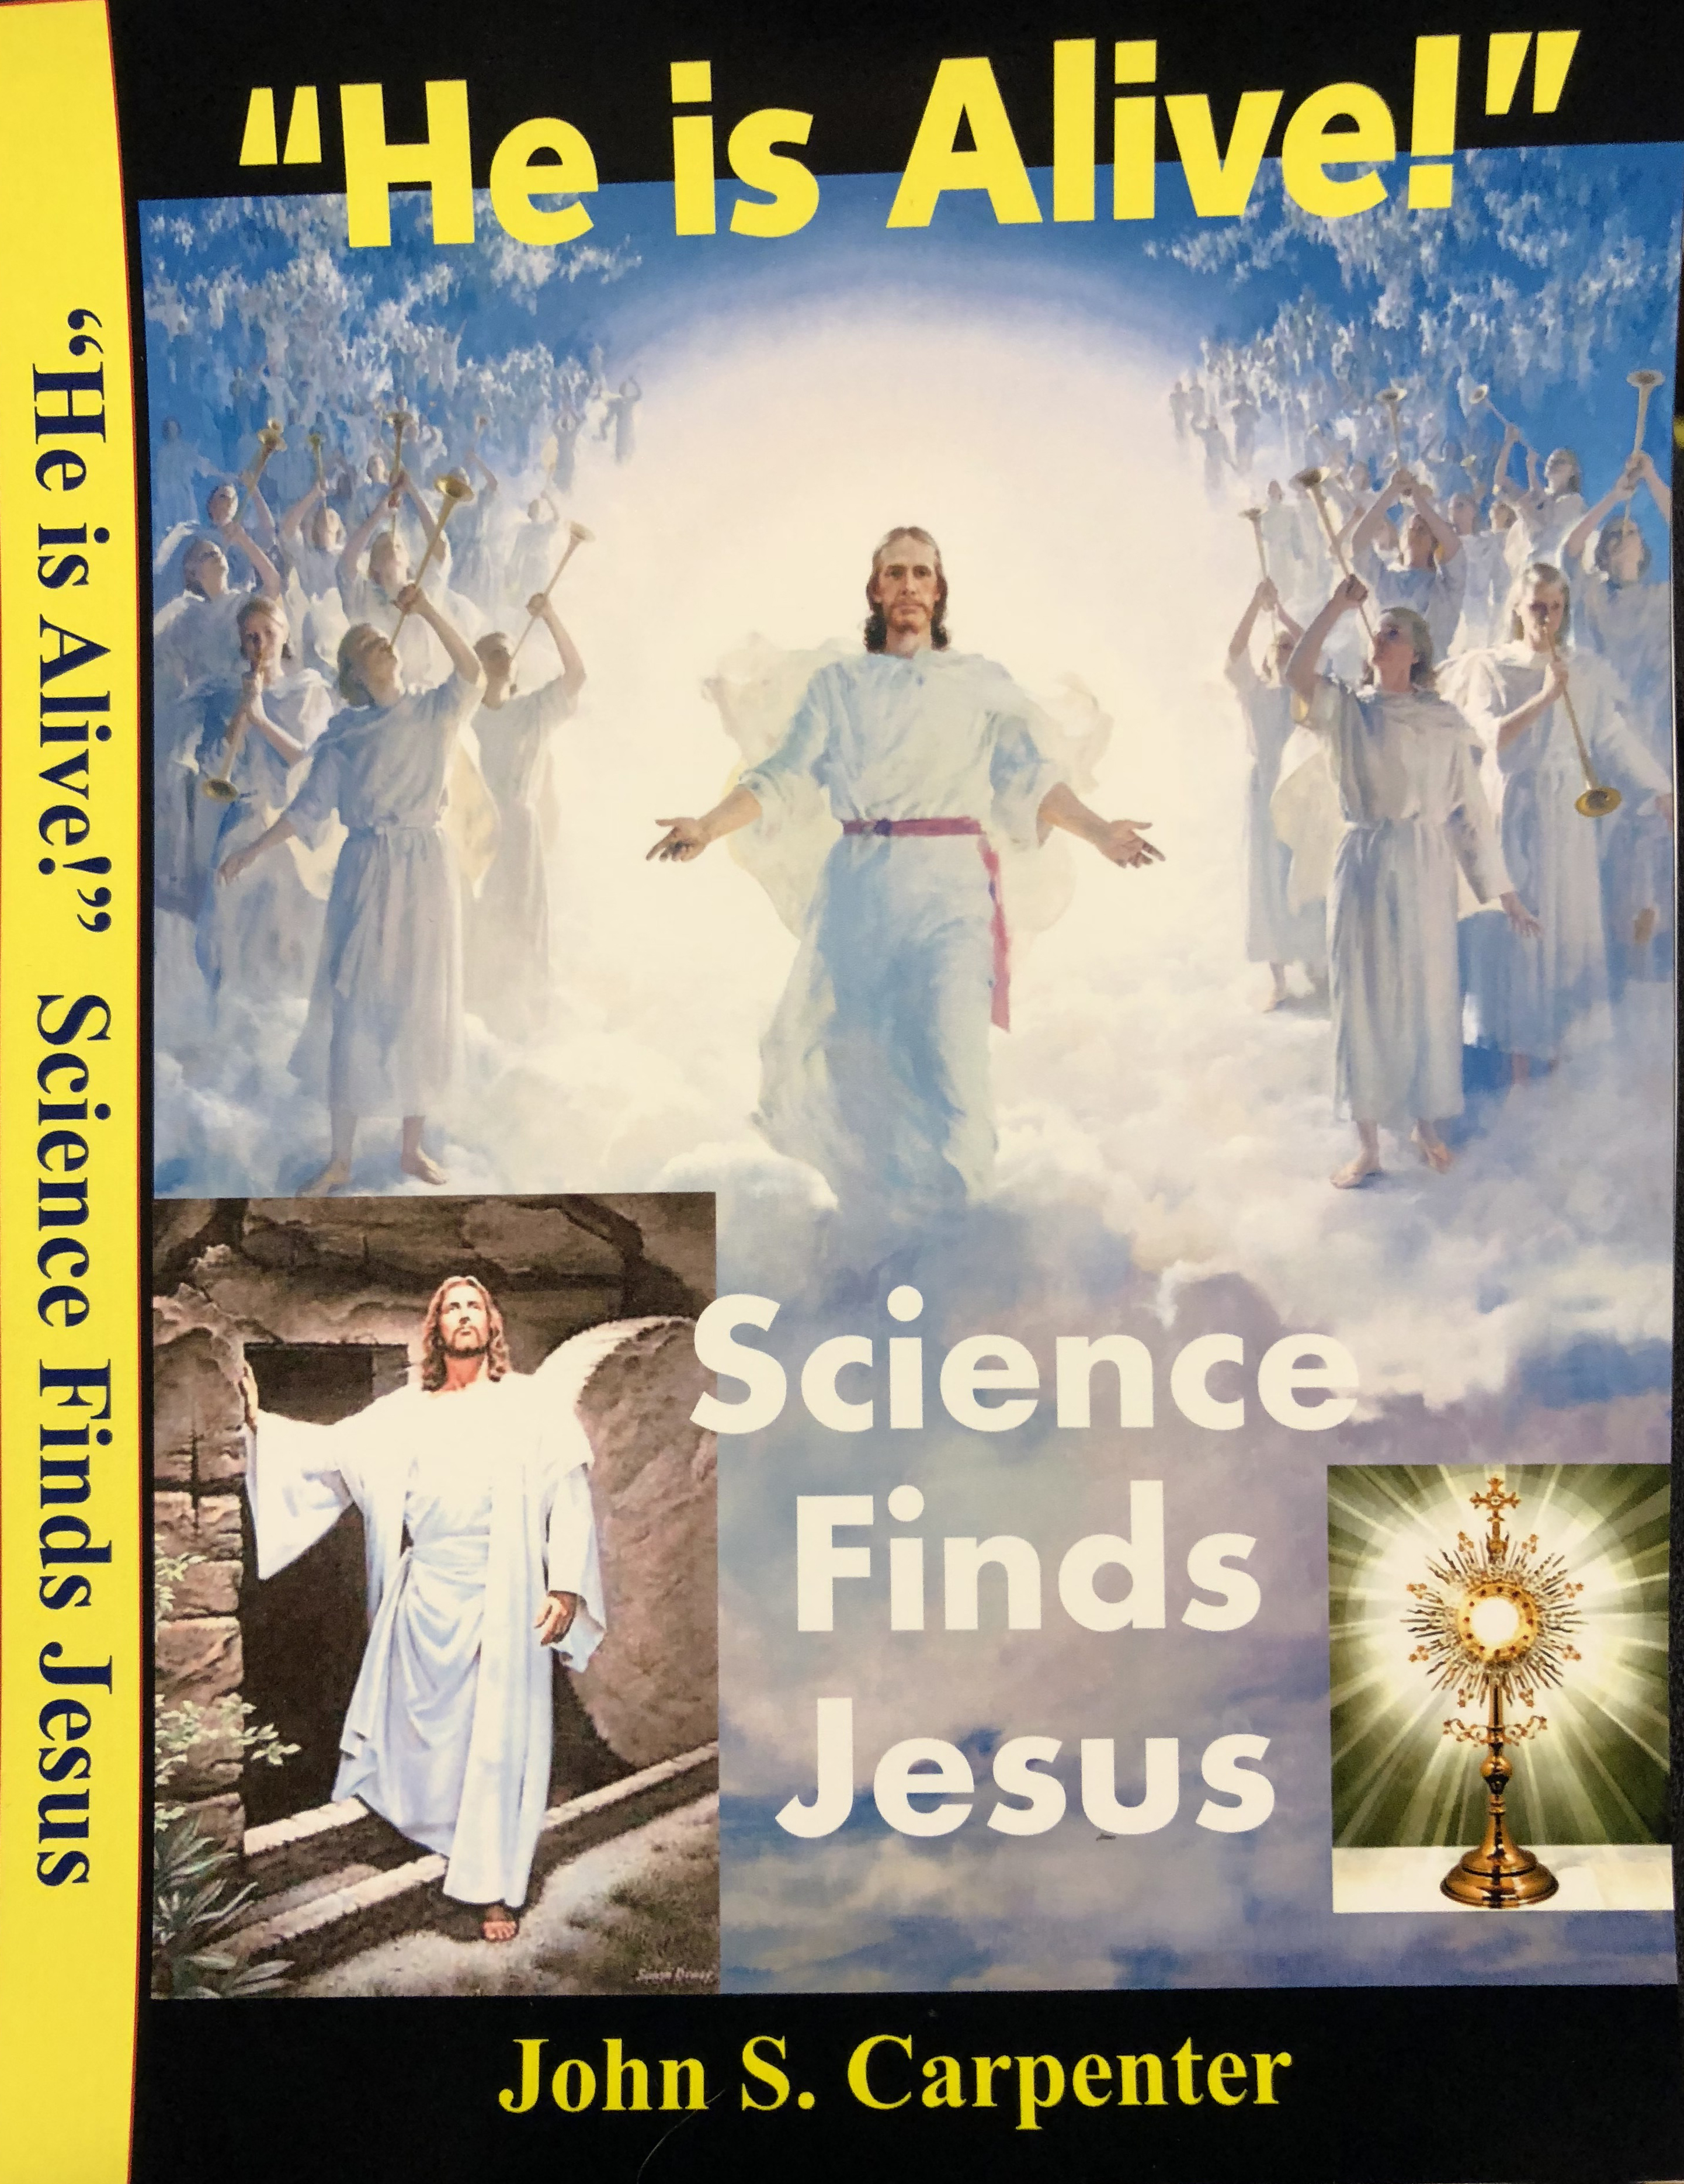 Science Finds Jesus DVD Front Cover